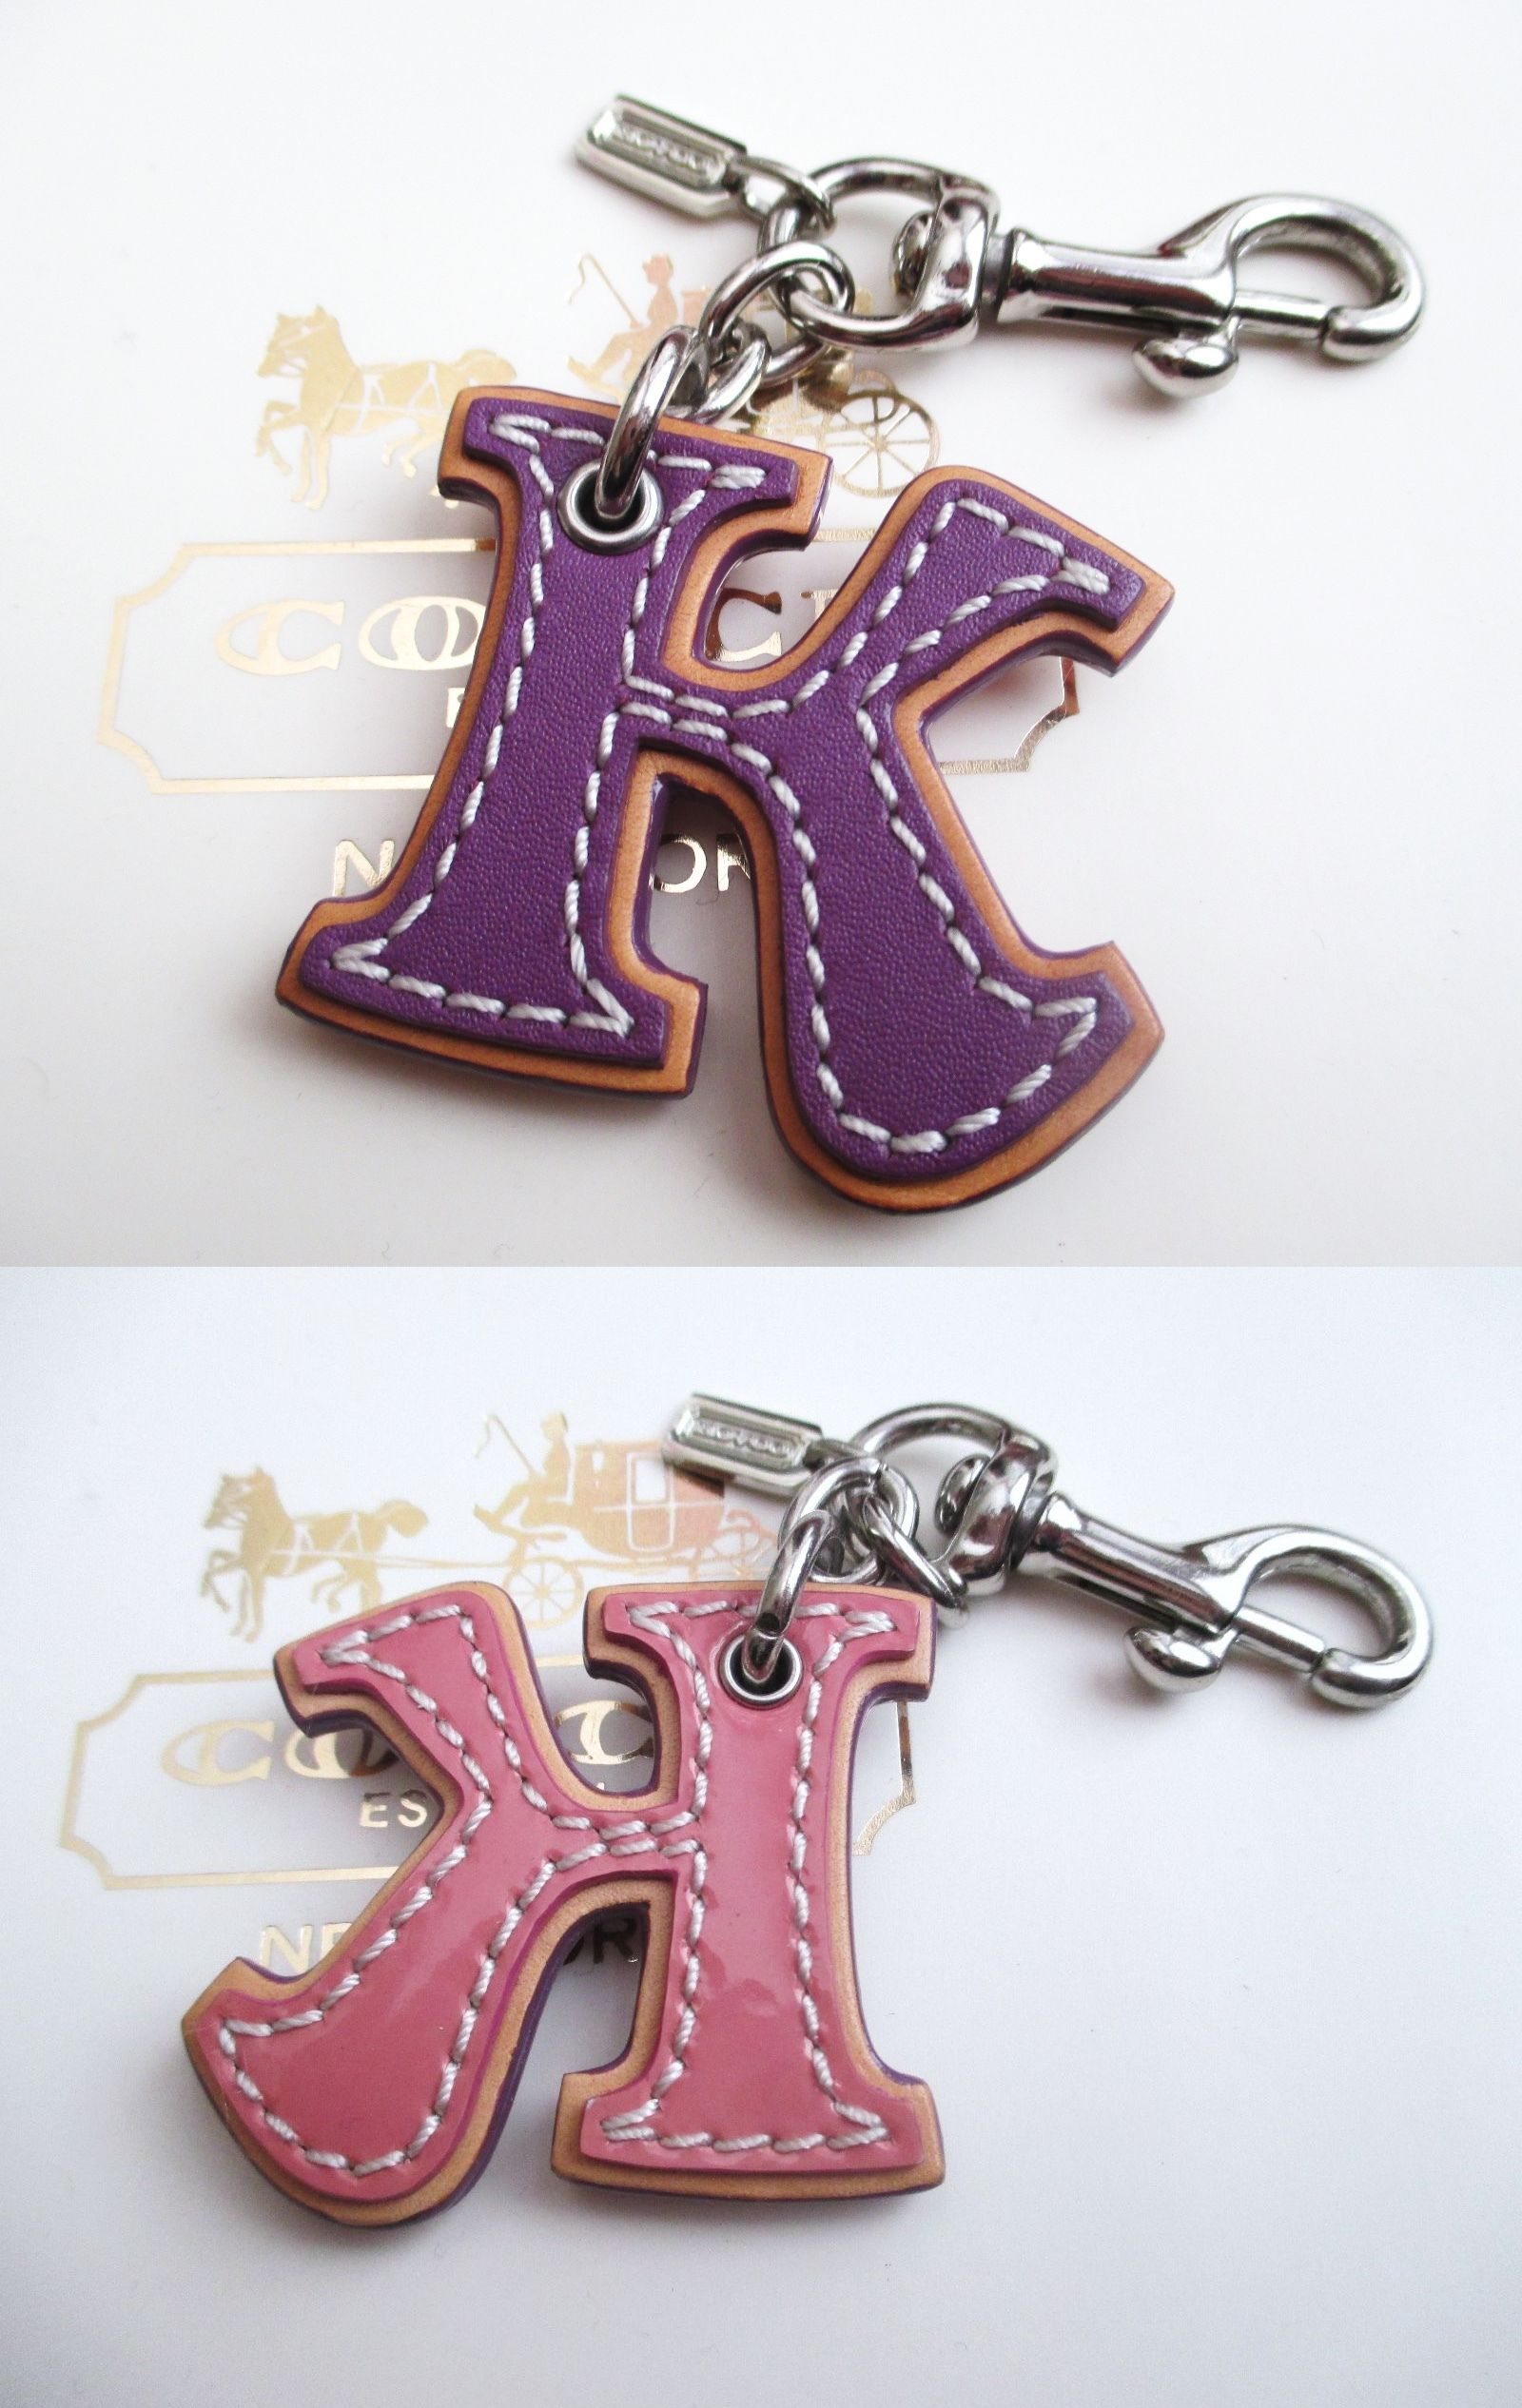 bc59588f24 Key Chains Rings and Finders 45237  Coach Leather Initial Alphabet Letter K  K Key Fob Chain Keychain Charm -  BUY IT NOW ONLY   58 on eBay!